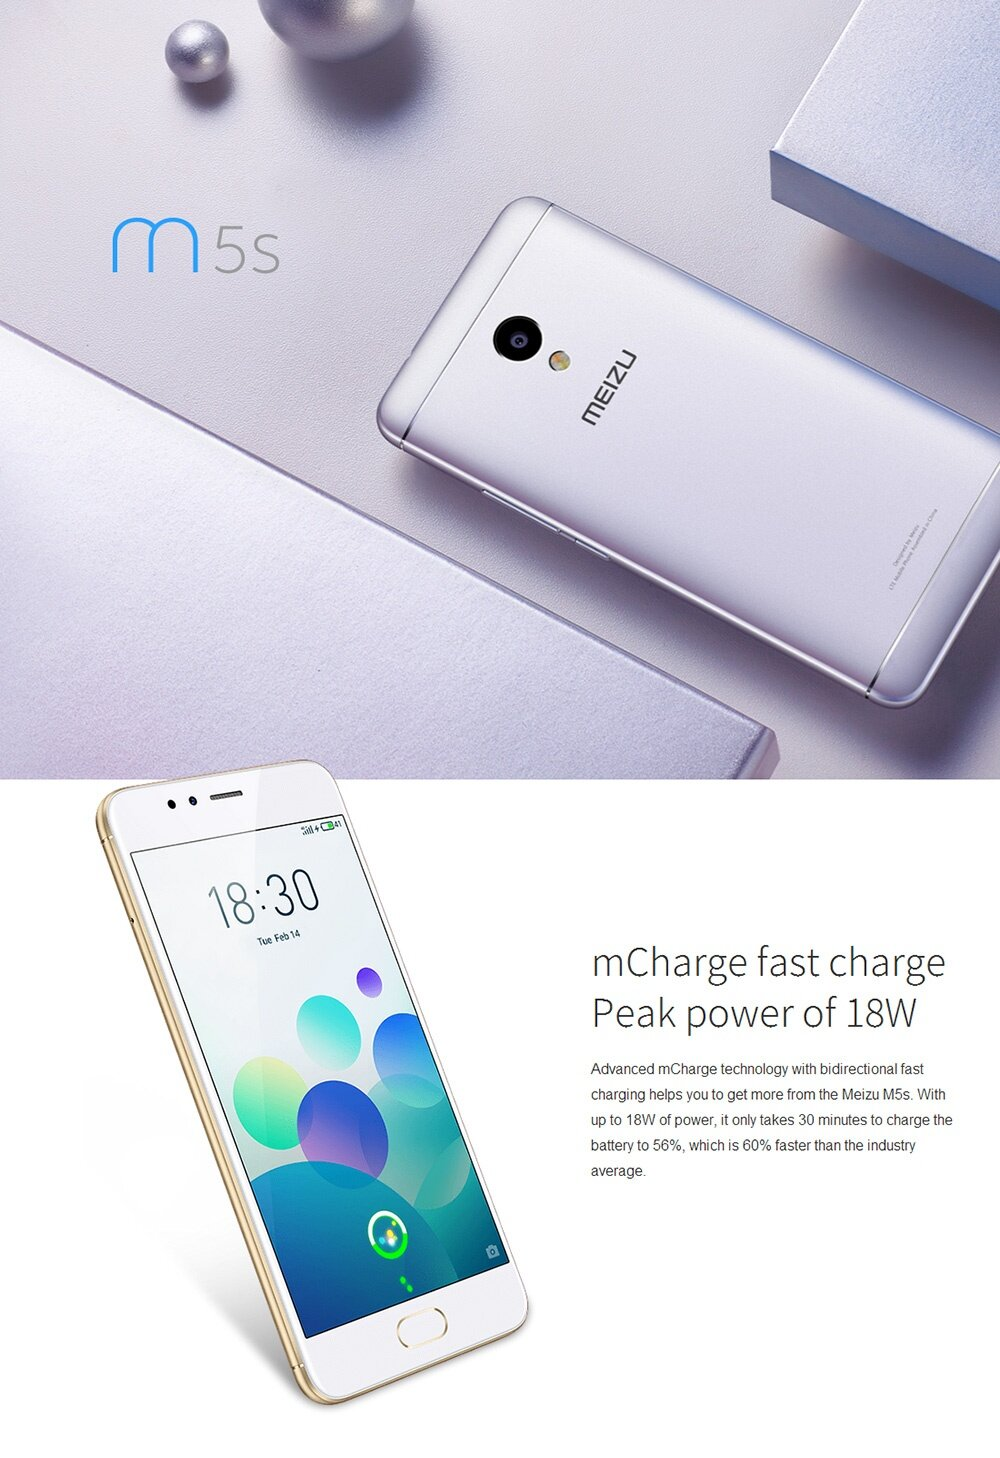 MEIZU M5S 5.2 Inch 3GB RAM 32GB ROM 5.0MP+13.0MP Cam MT6753 Octa Core 1.3GHz 4G LTE Flyme 5 Smartphone Quik Charge Metal Body Touch ID - Silver